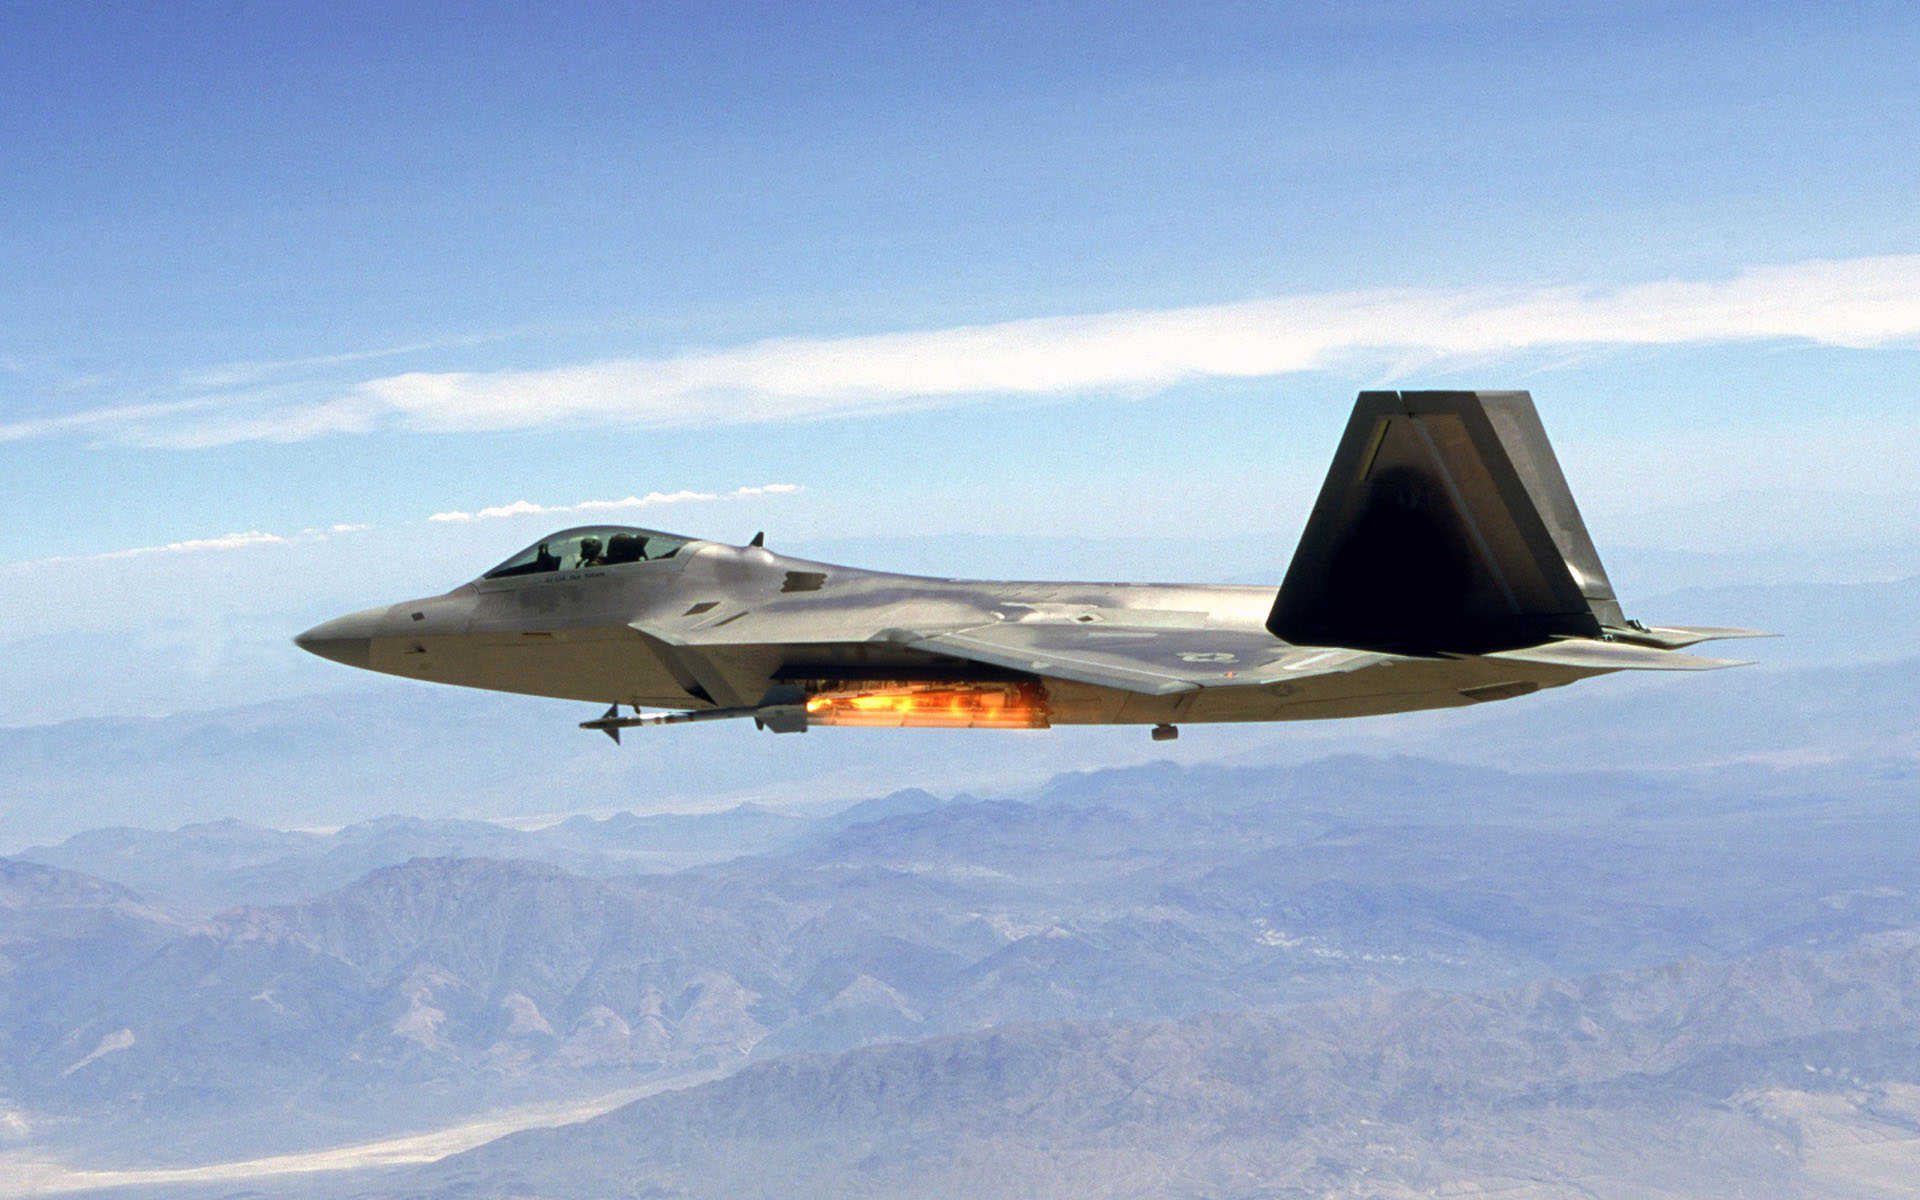 Download F 22 Raptor Wallpaper at 1920 x 1200 Resolution 1920x1200